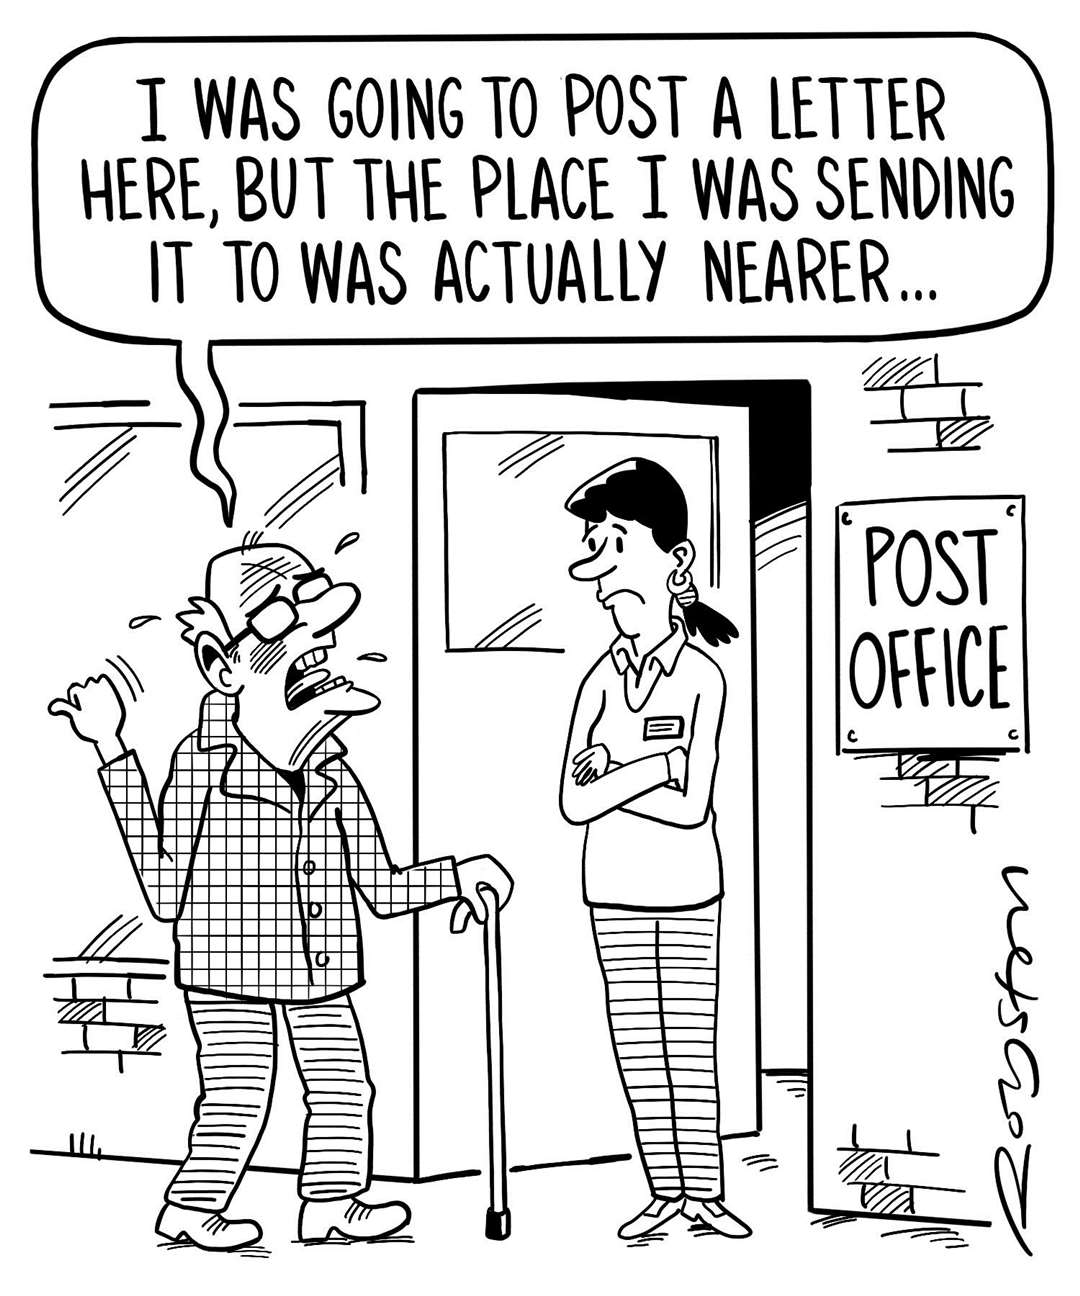 Post office cartoon by Royston Robertson